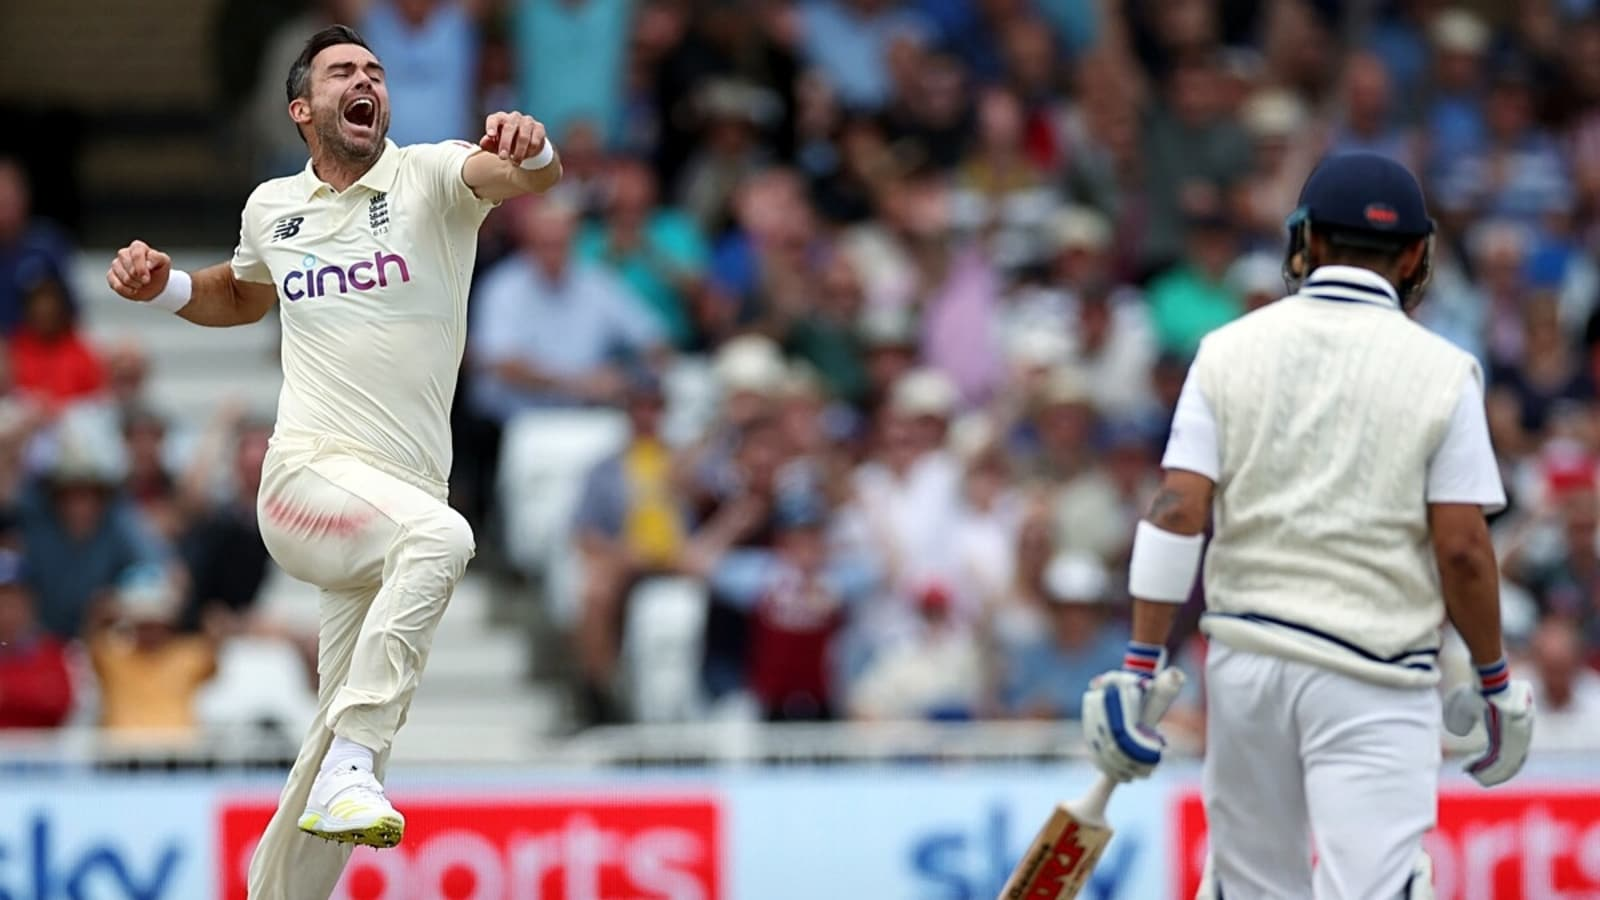 It was just an outpouring of emotions': James Anderson on his celebration  after getting the 'big wicket' of Virat Kohli | Cricket - Hindustan Times